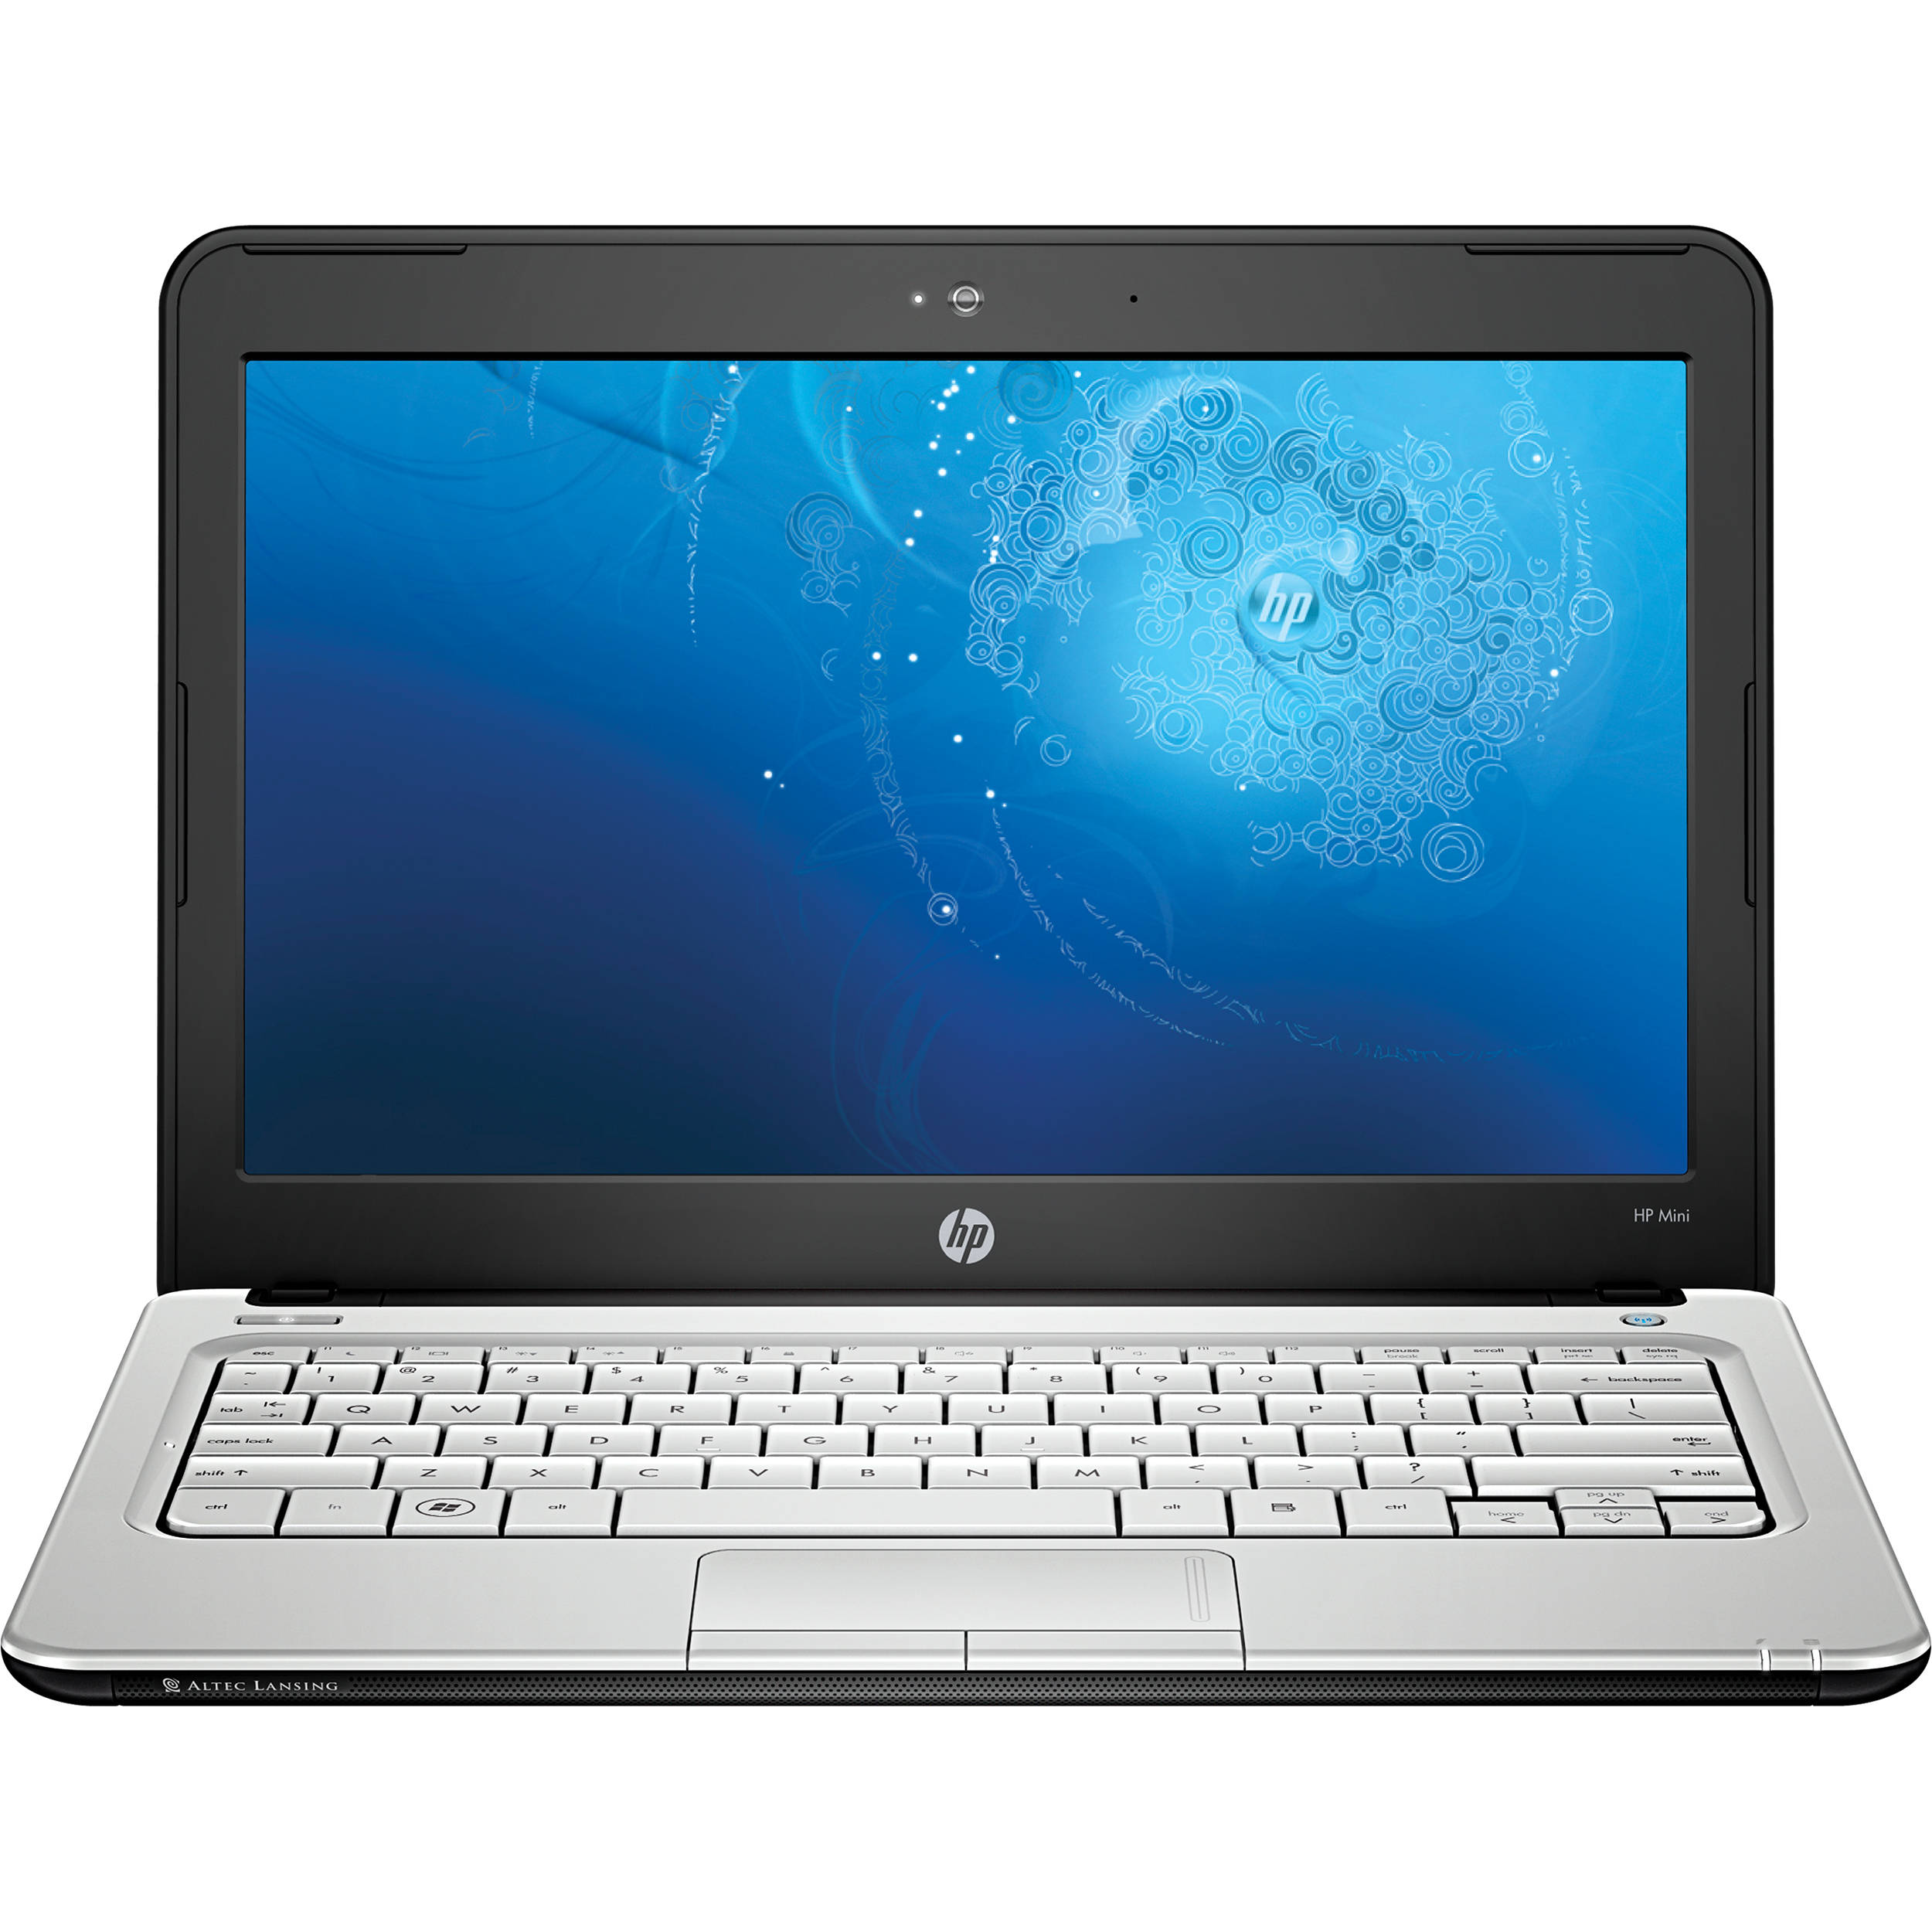 HP MINI 311-1025NR WIRELESS ASSISTANT DRIVERS FOR WINDOWS DOWNLOAD